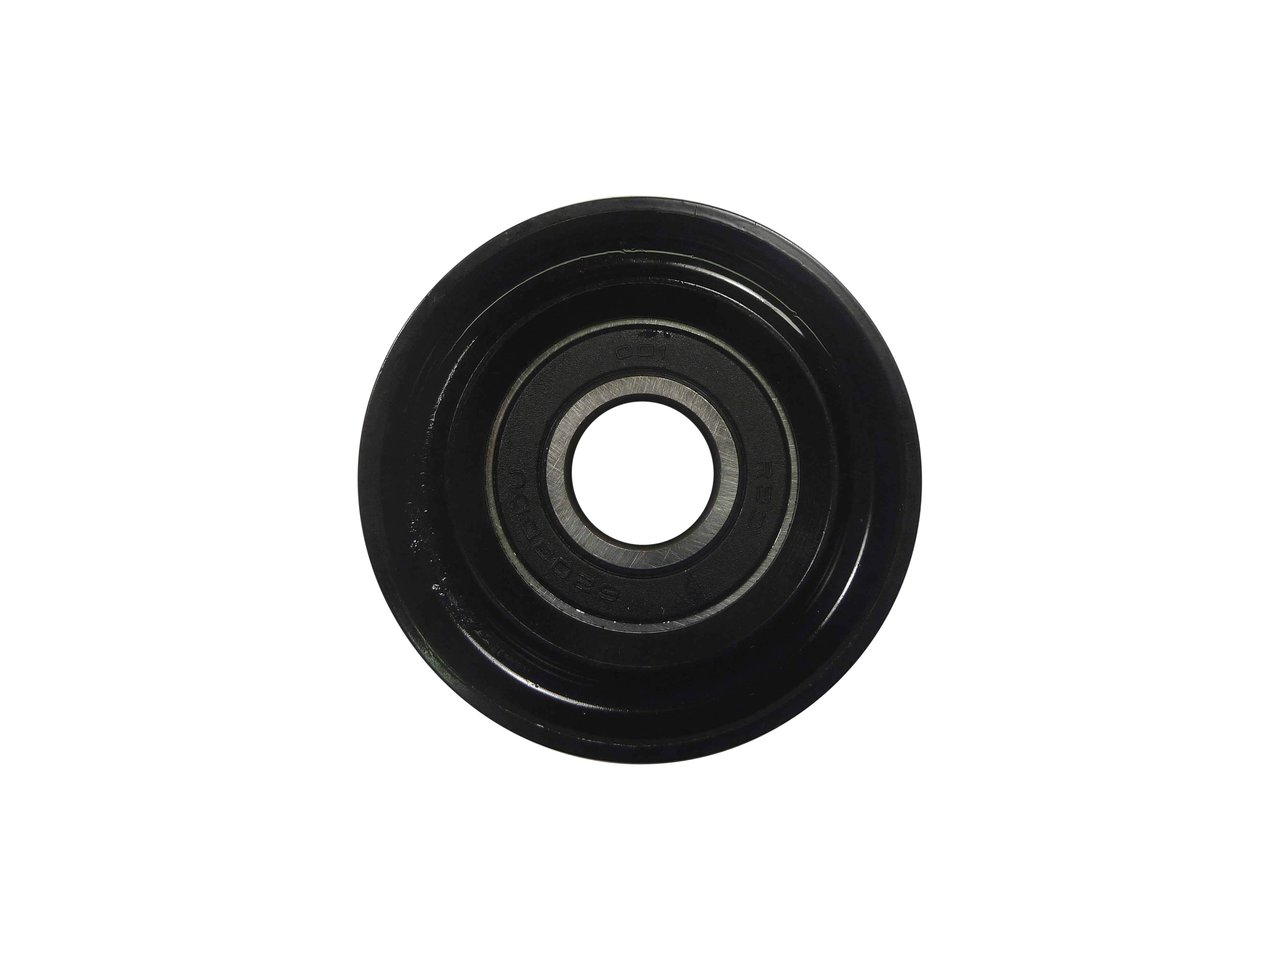 Air Conditioner Belt Tensioner Pulley Land Rover Defender 300tdi Conditioning Discovery Err7296